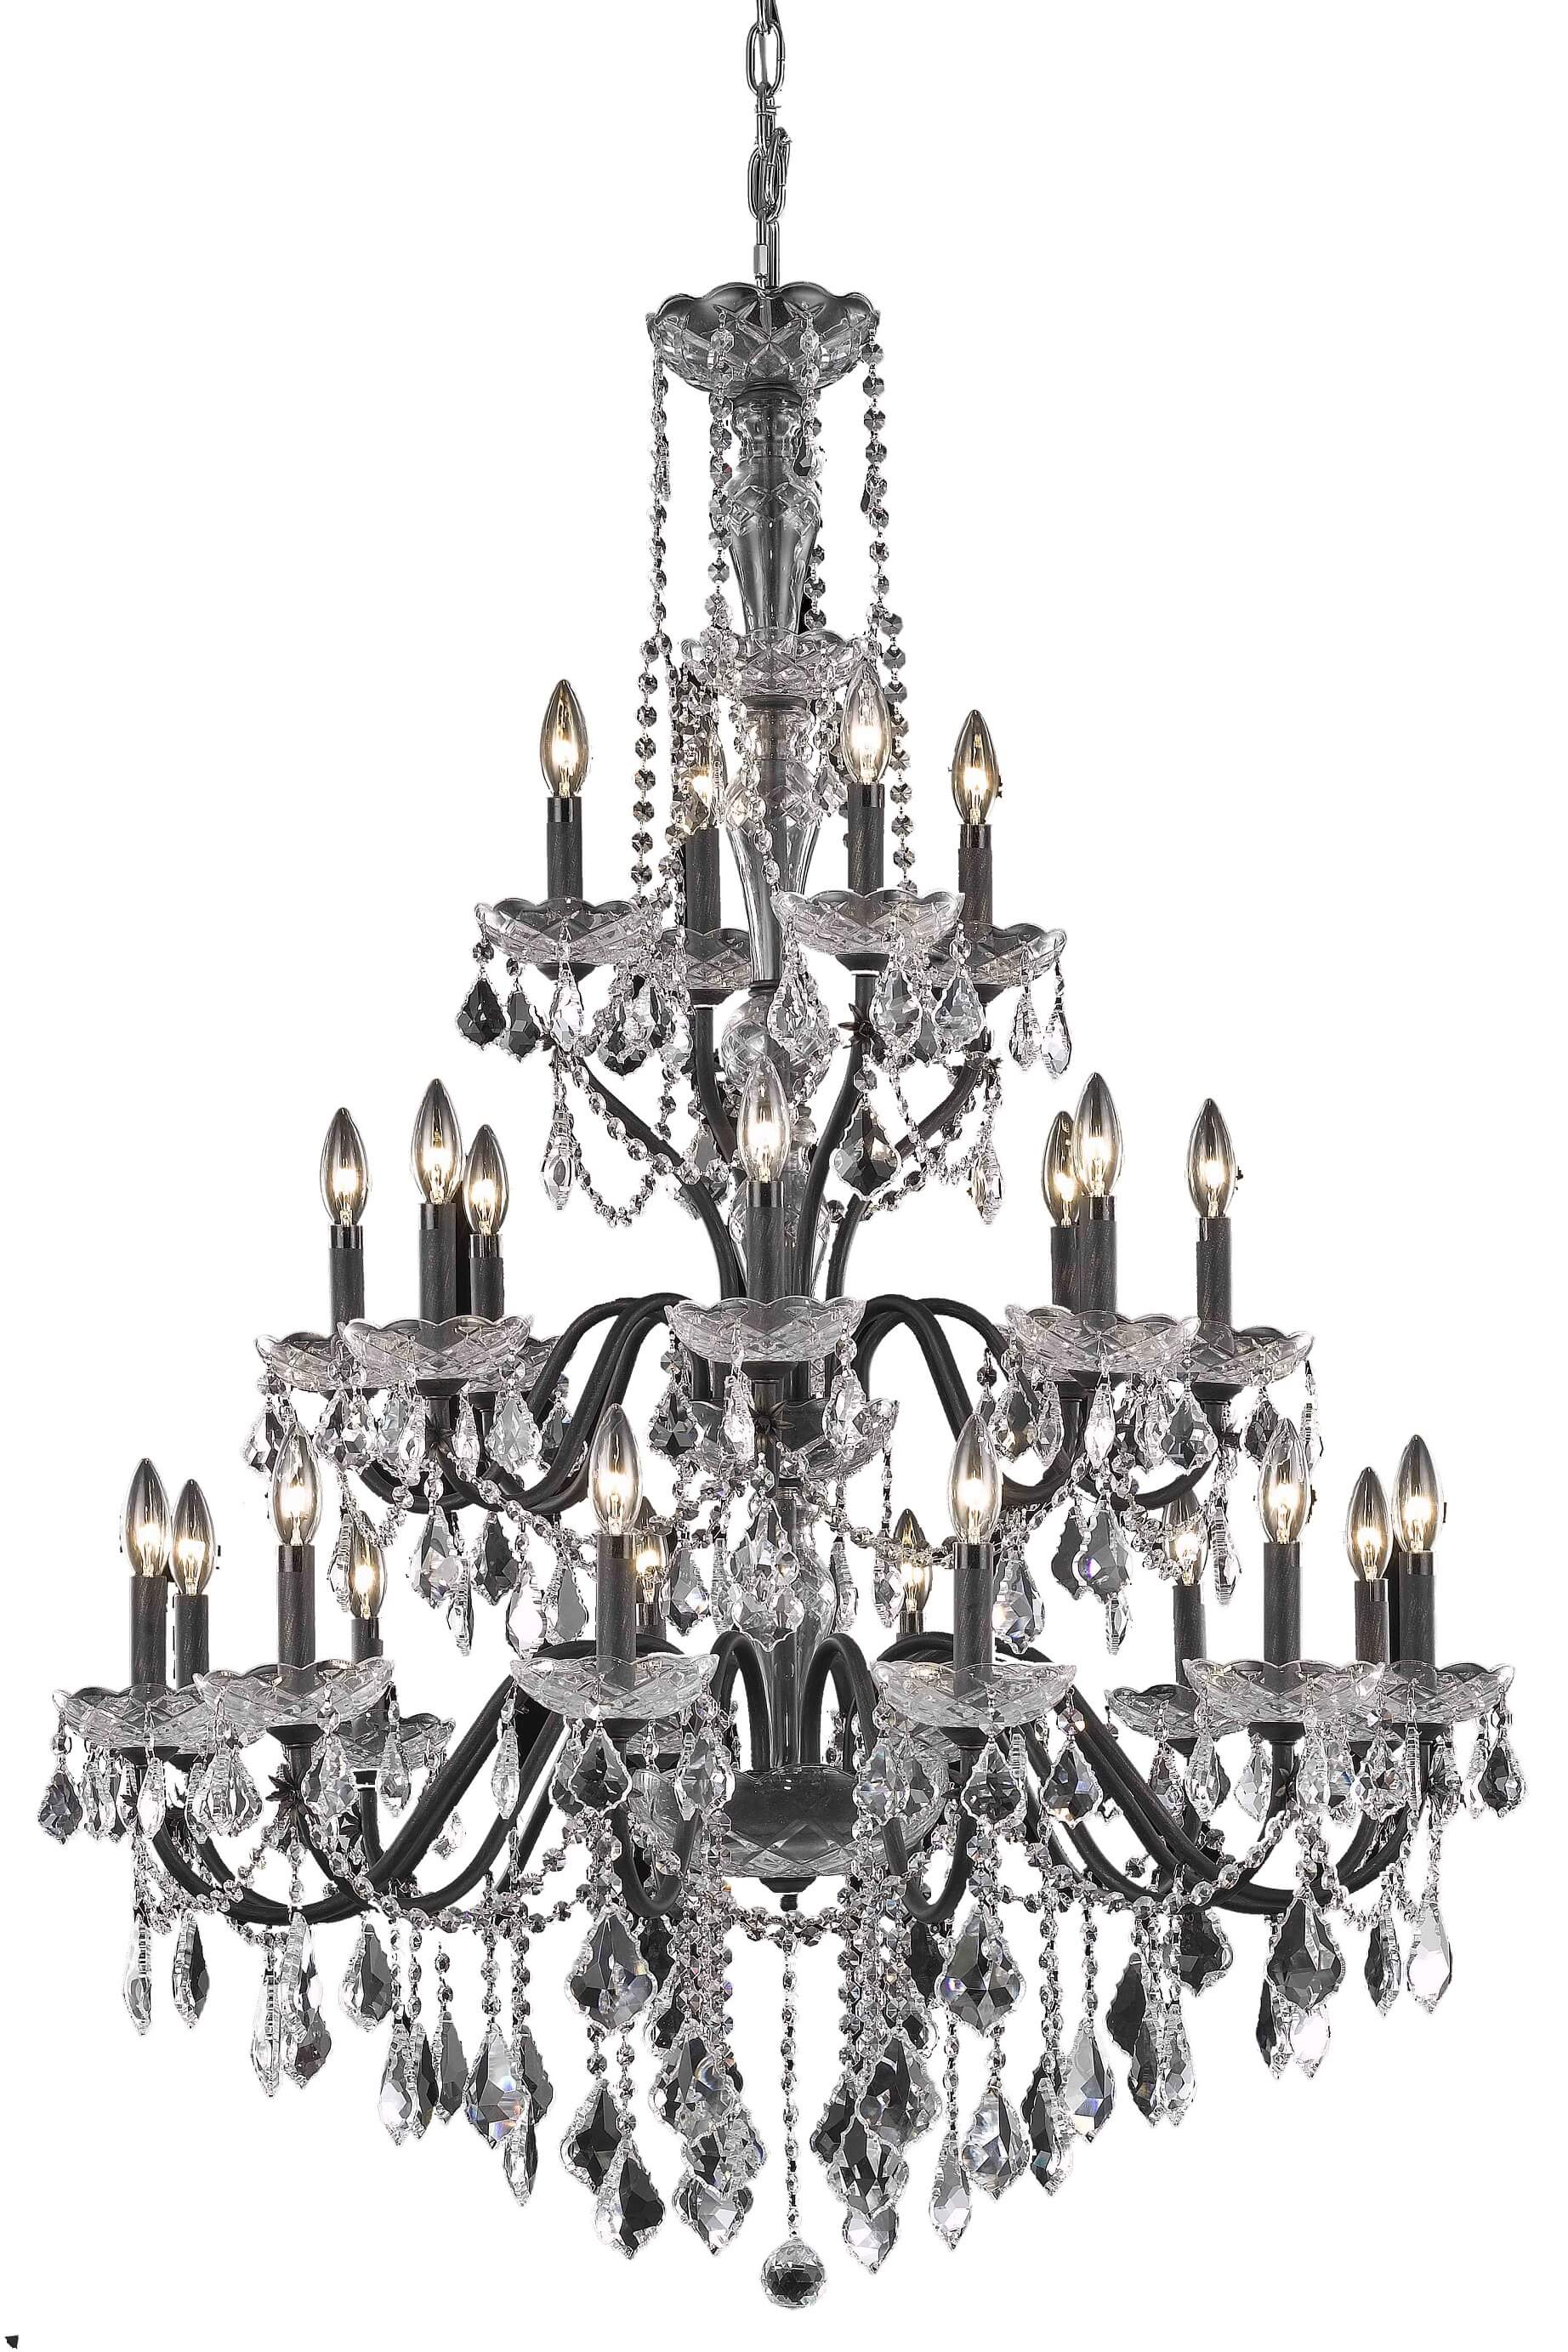 24 Lights Chandelier St Francis Collection By